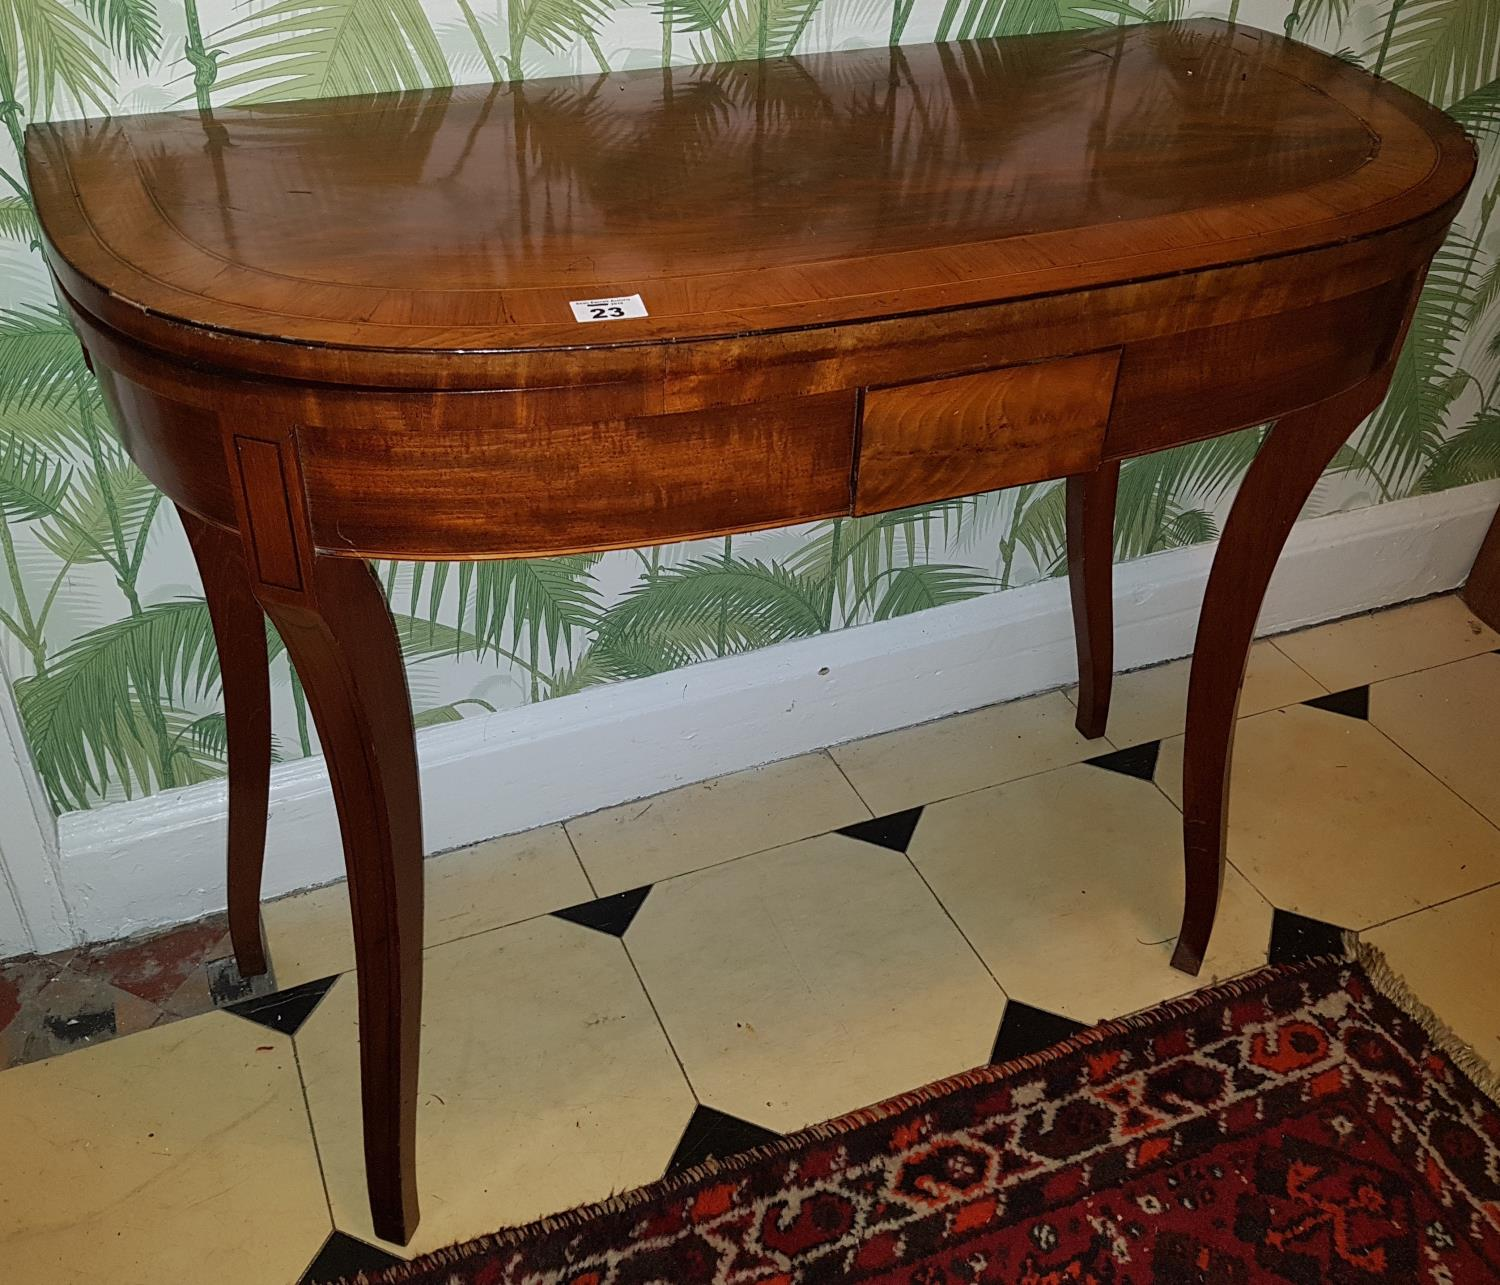 Lot 23 - A Regency Mahogany Crossbanded Foldover Card Table with carved tapered supports. 92cm.